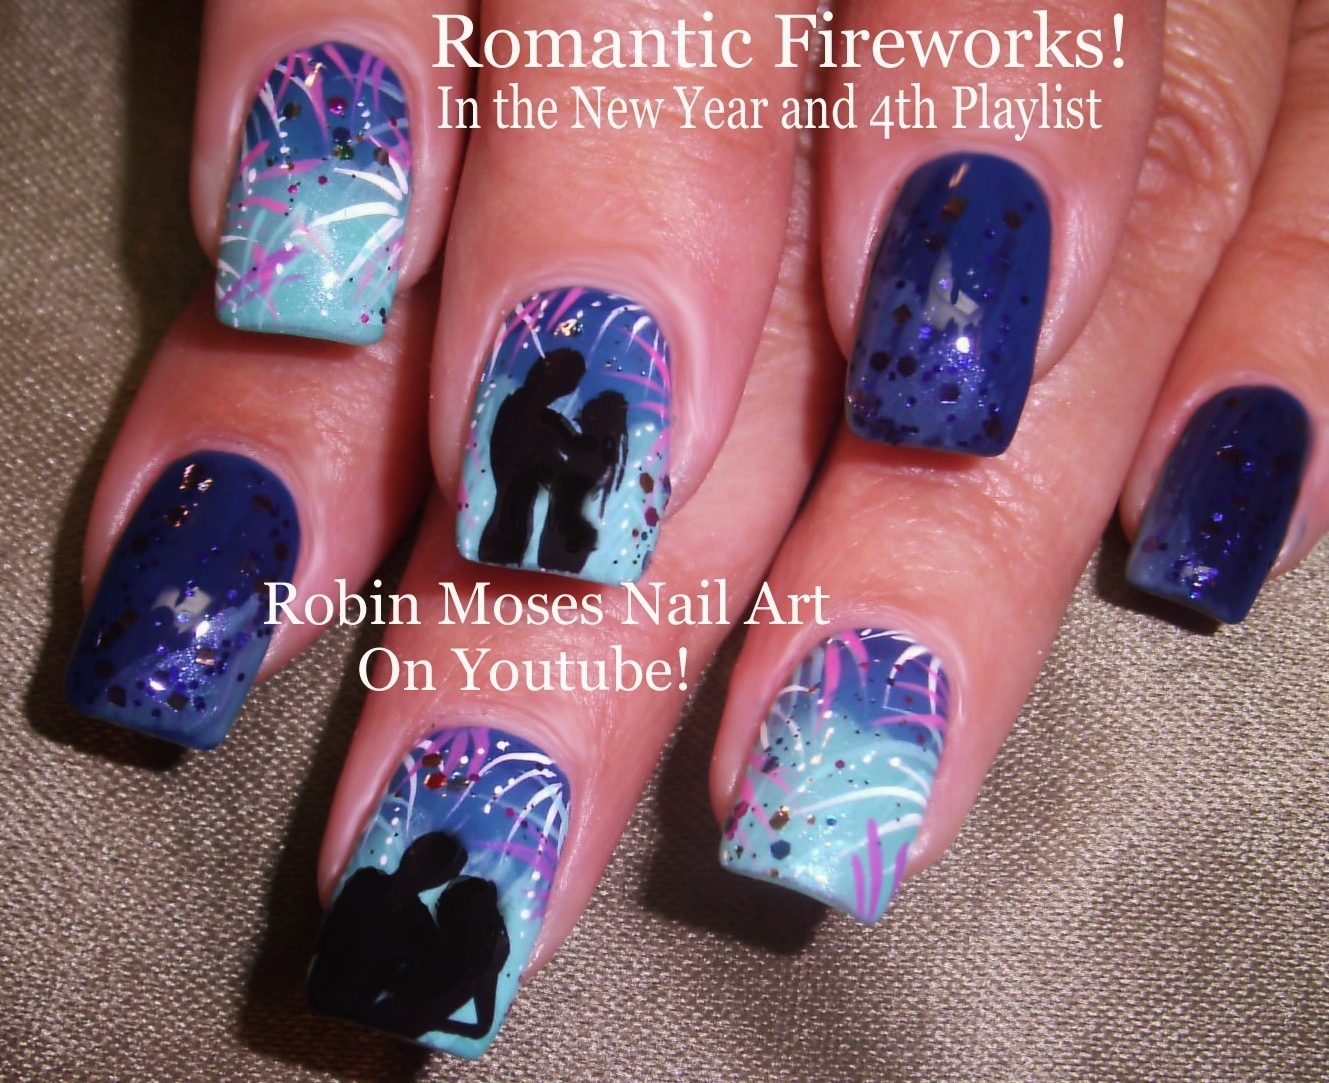 Robin moses nail art romantic firework nail art design tutorial romantic firework nail art design tutorial up for the 4th of july have fun painting prinsesfo Images